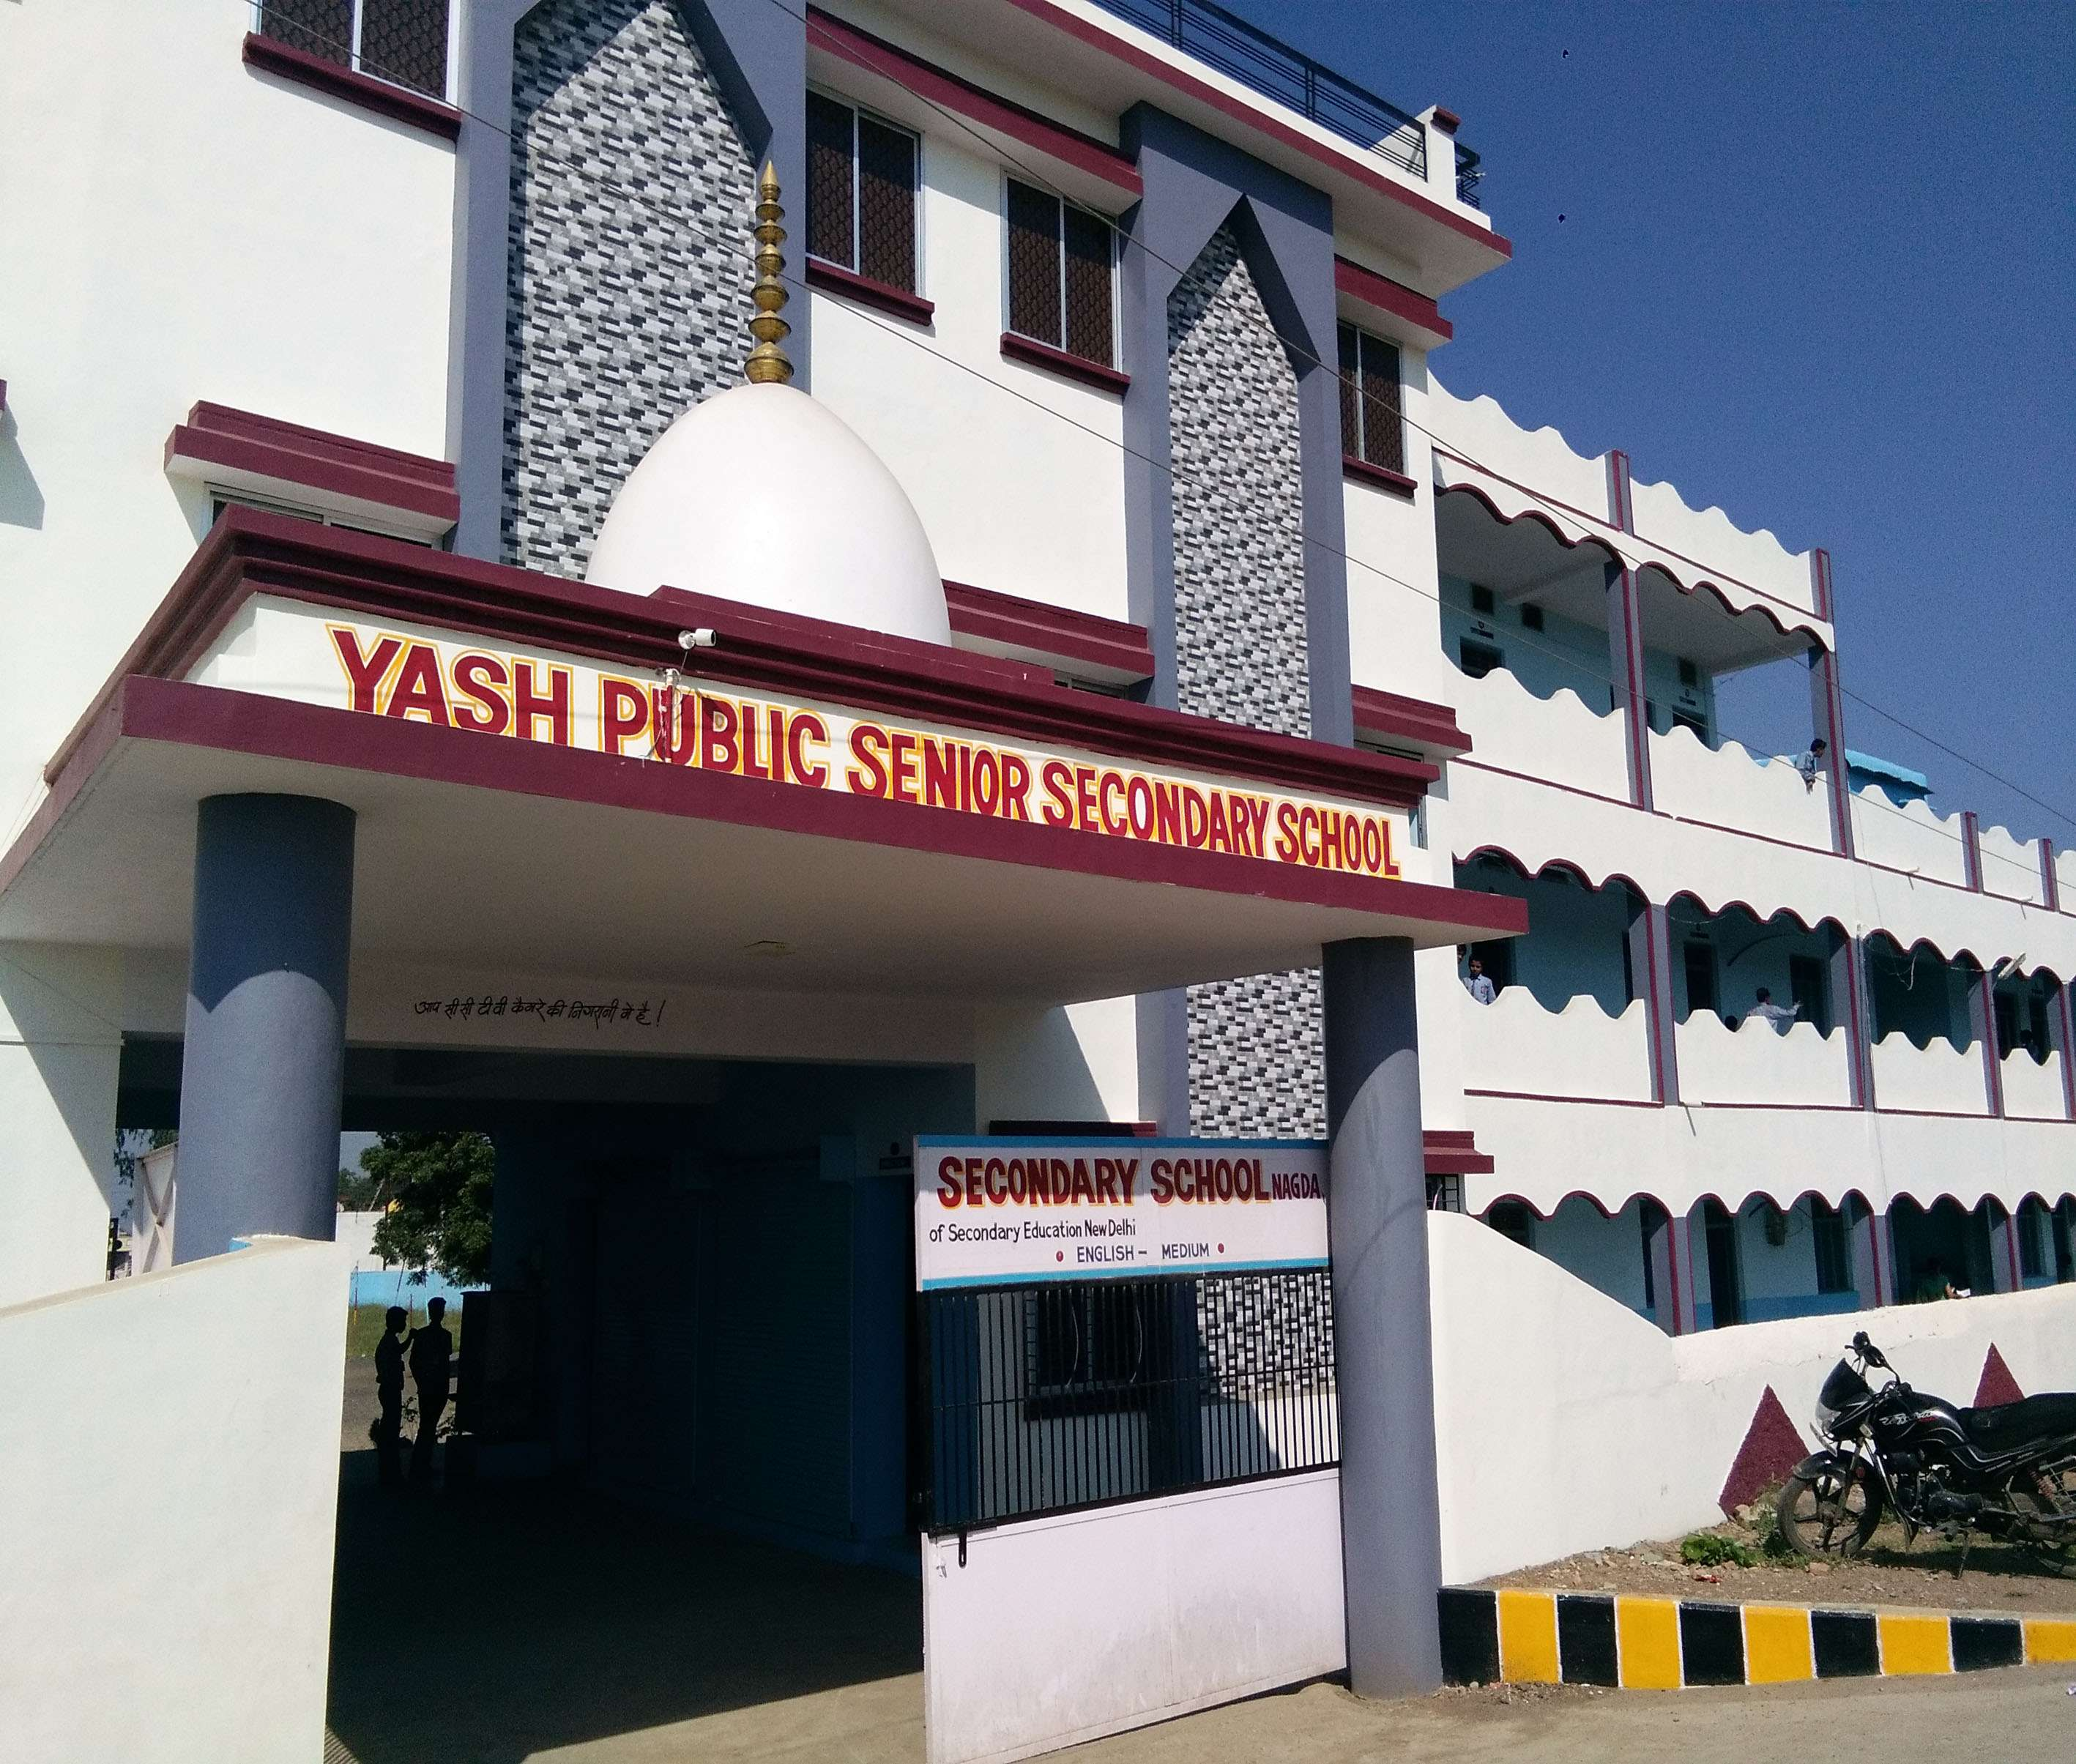 YASH PUBLIC SCHOOL AMLA VIDYA ROAD HOUSING BOARD COLONY NAGADA DISTT UJJAIN MADHYA PRADESH 1030216